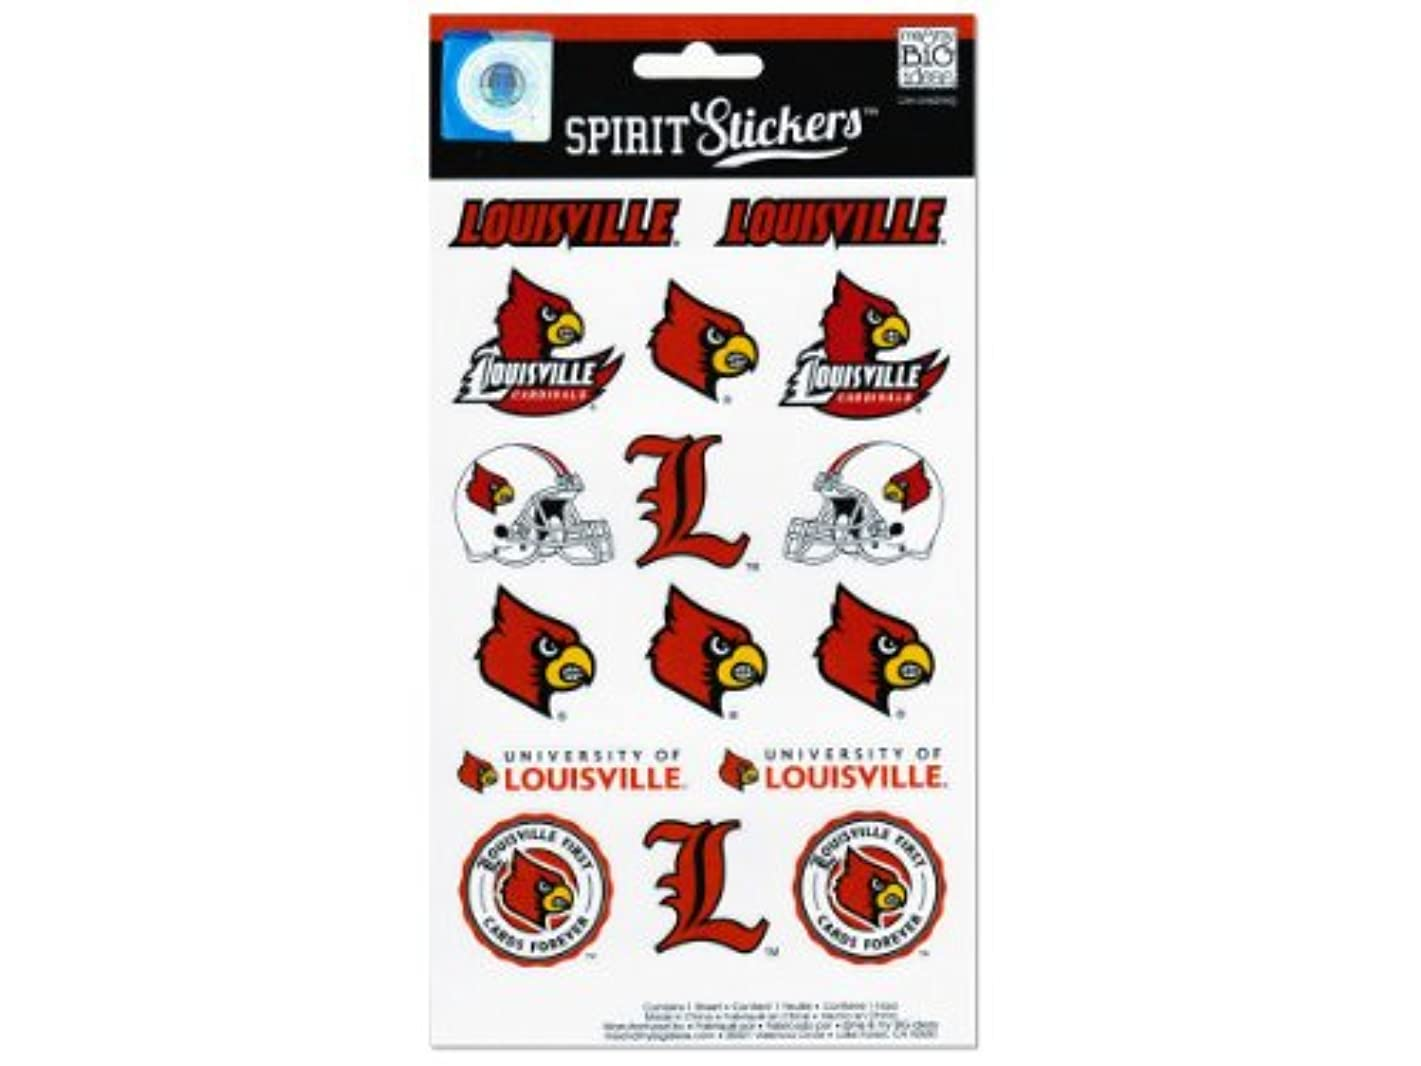 me & my BIG ideas Officially Licensed NCAA Spirit Stickers, Louisville